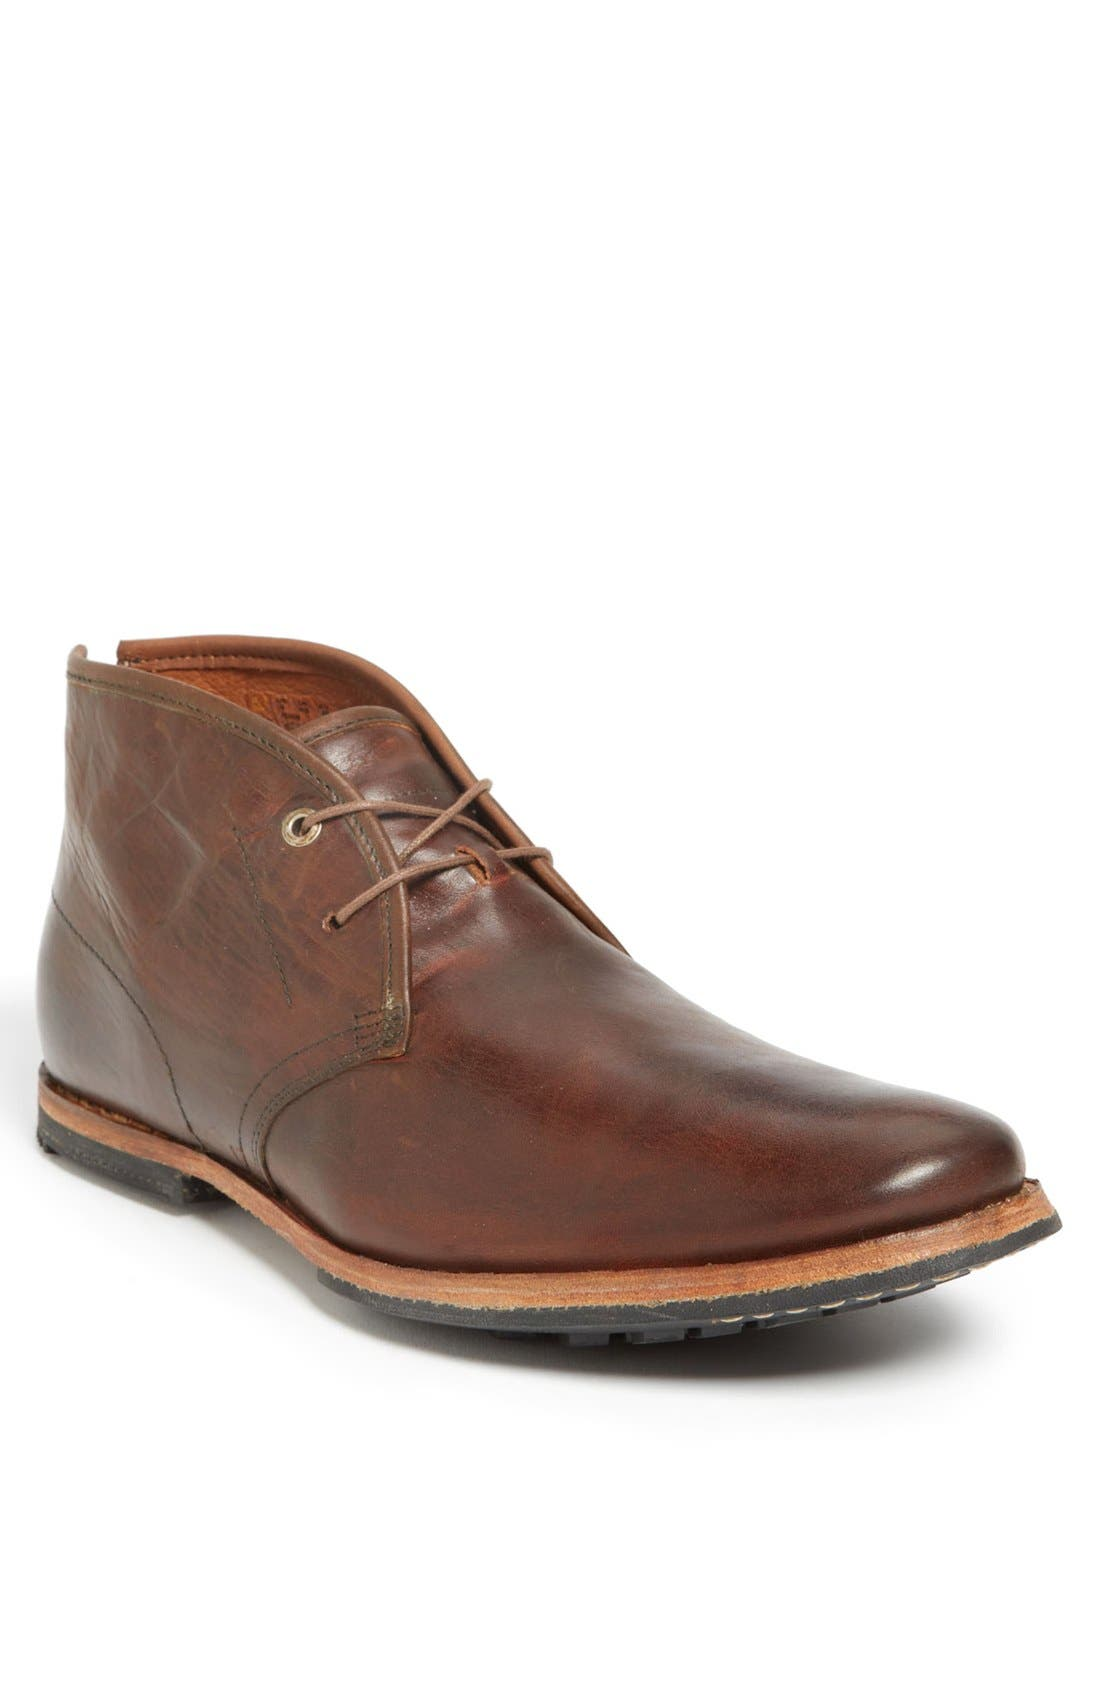 Wodehouse Lost History Chukka Boot,                         Main,                         color, Burnished Dark Brown Leather